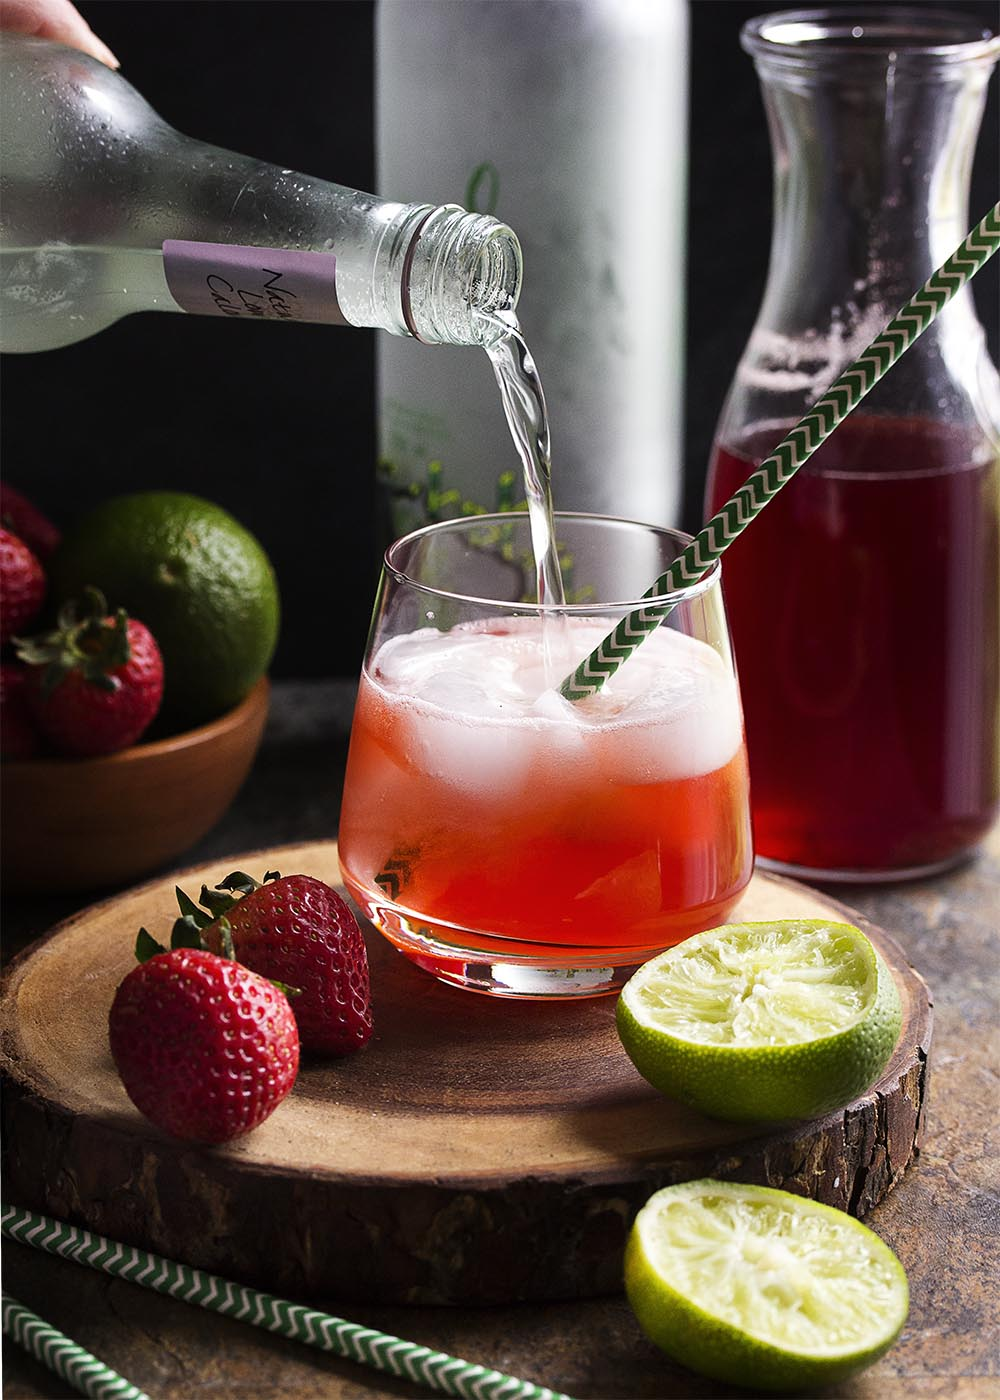 Homemade strawberry syrup topped with ginger beer makes this Brazilian strawberry caipirinha cocktail a refreshingly fruity fizzy drink perfect for summer!   justalittlebitofbacon.com